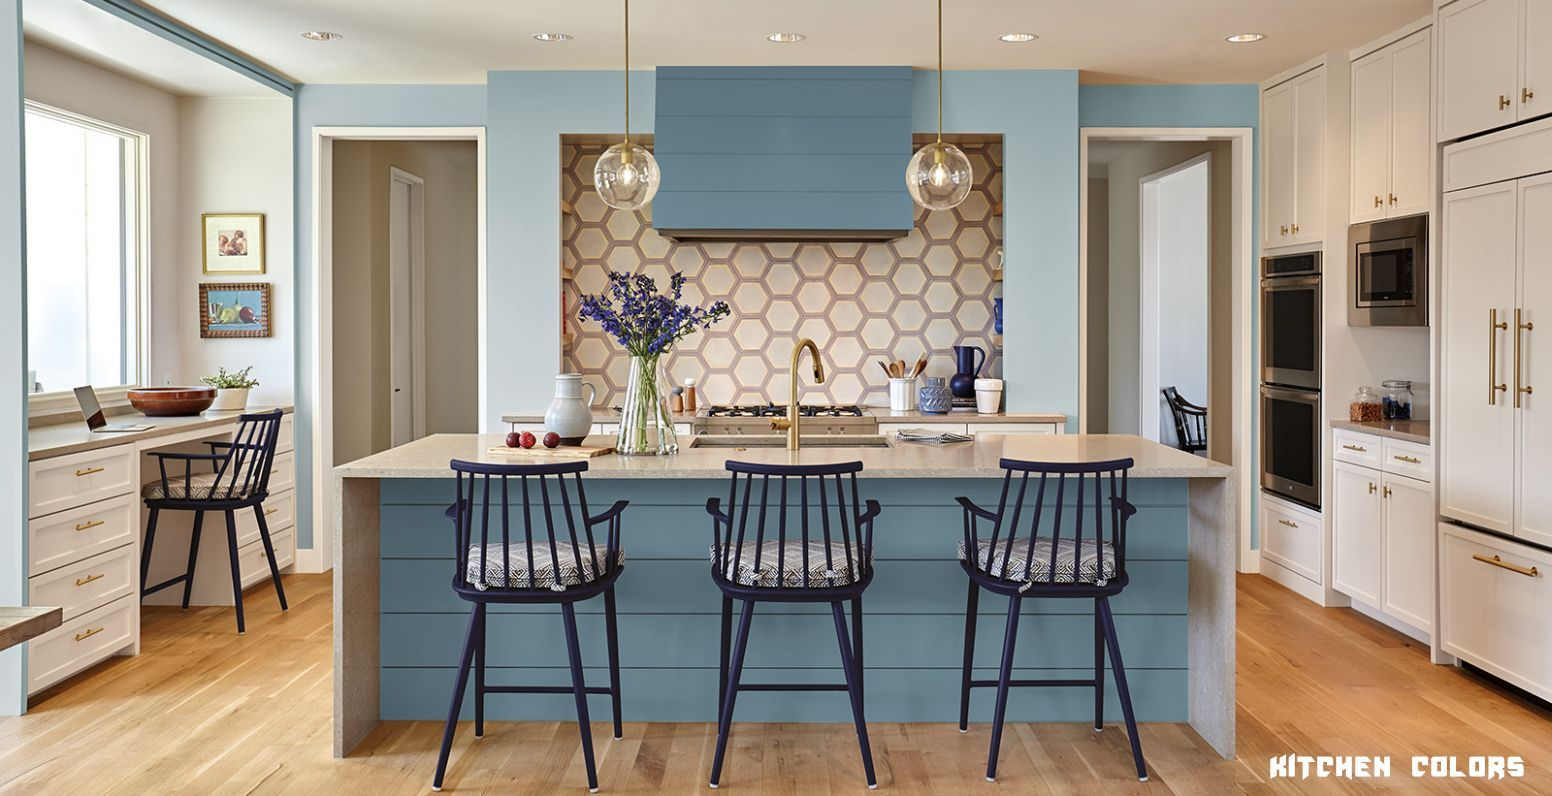 11 Kitchen Colors in 2020 Best kitchen colors, Yellow